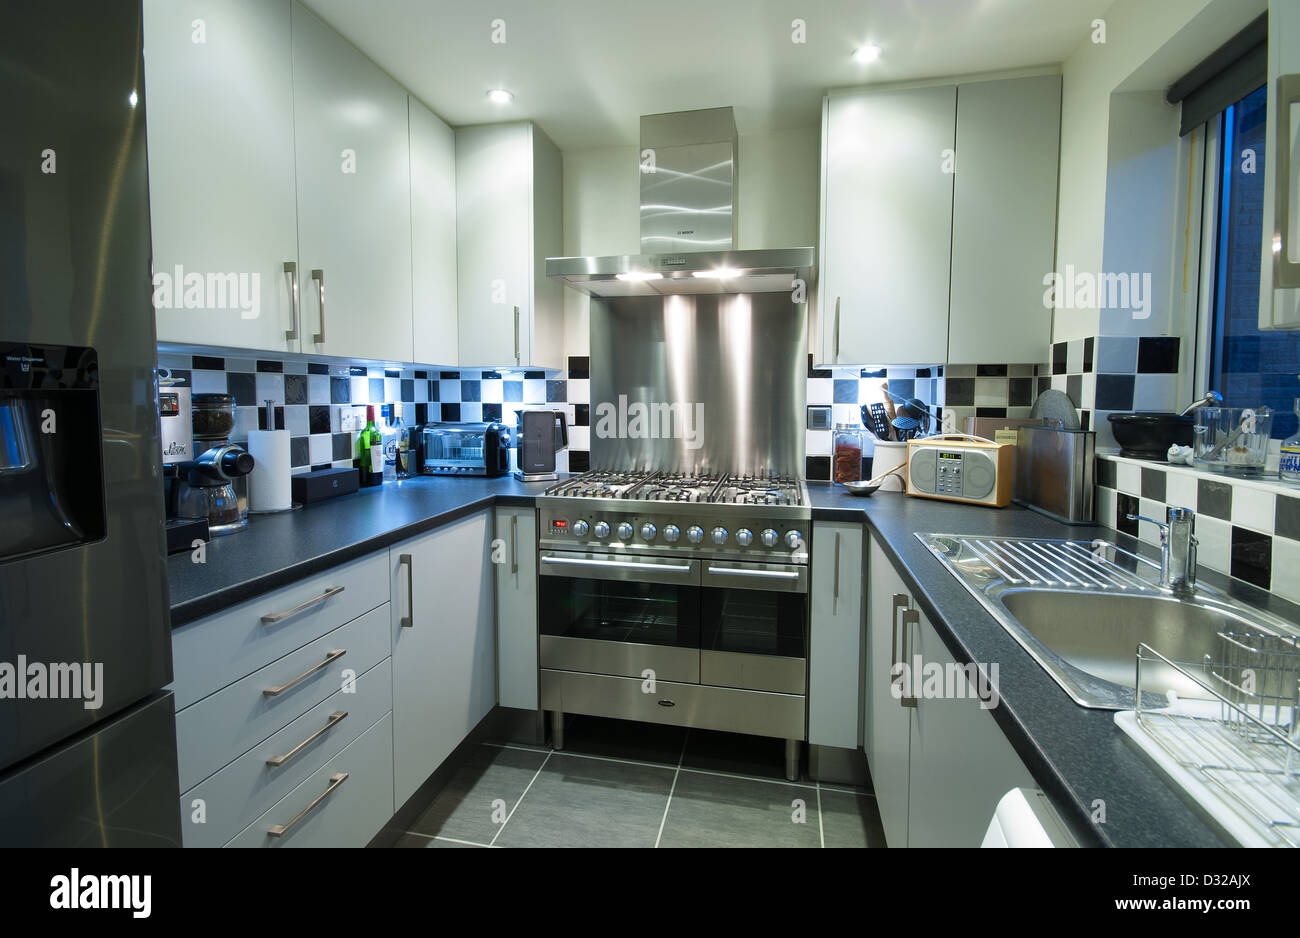 Range Cooker Stockfotos & Range Cooker Bilder - Alamy